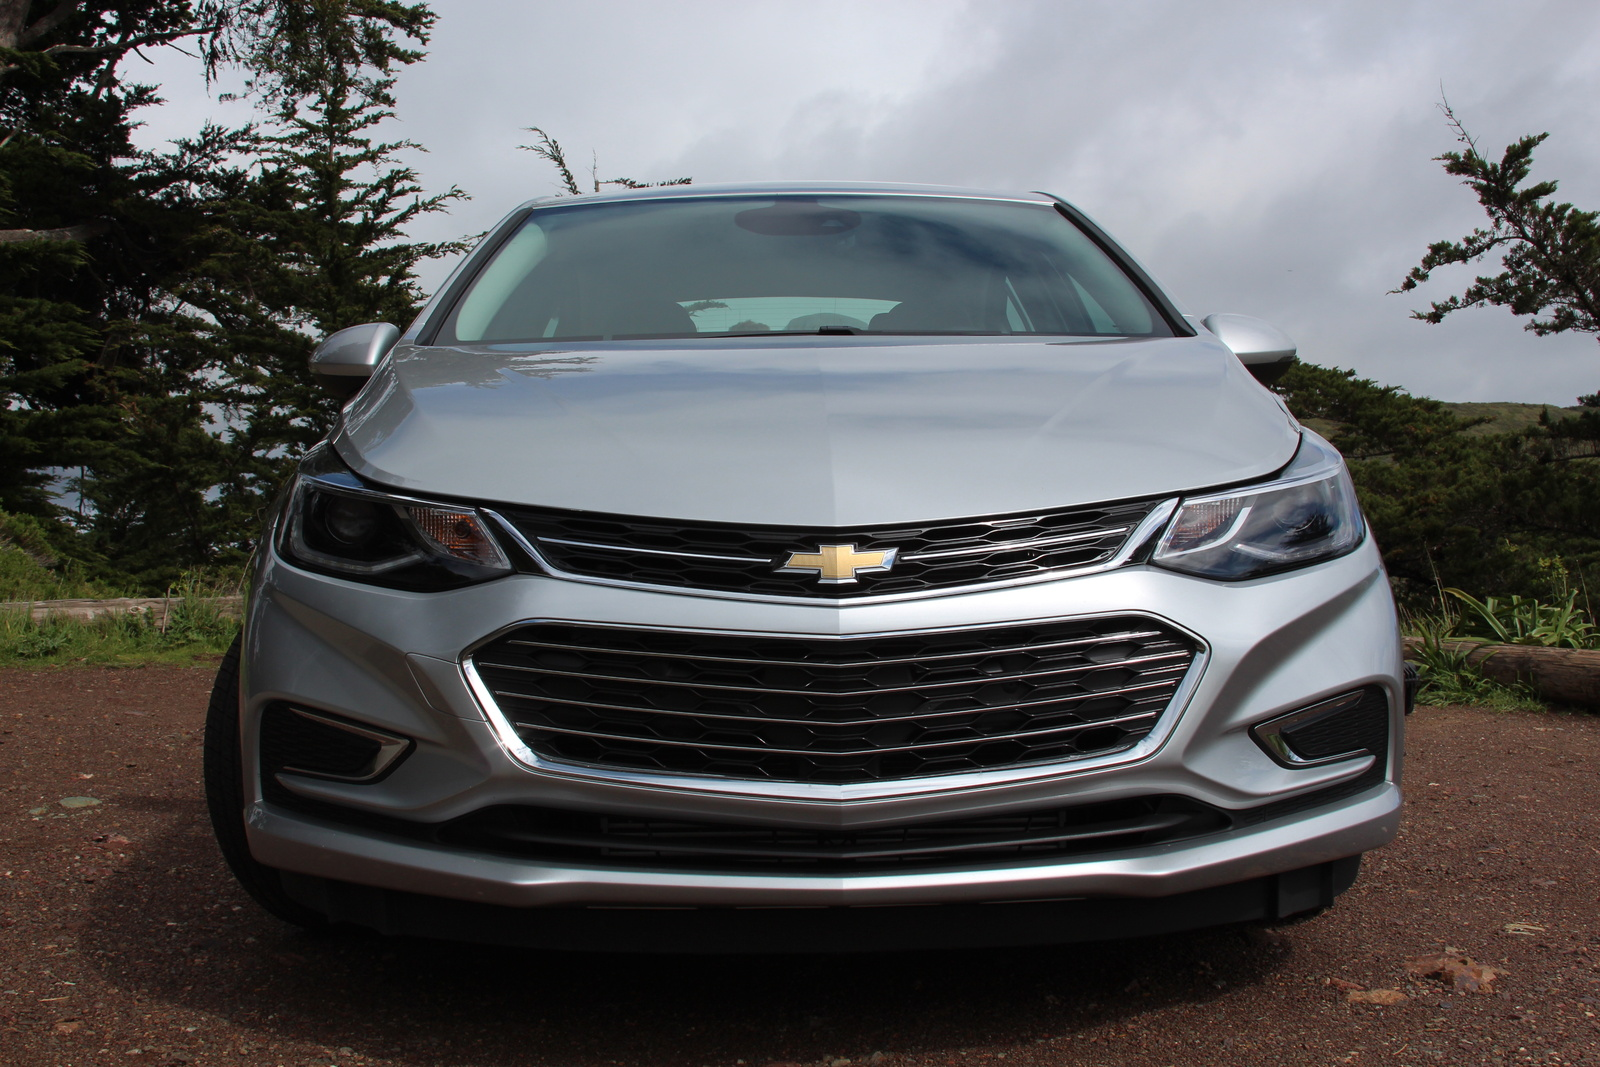 2017 Chevrolet Cruze for Sale in your area - CarGurus